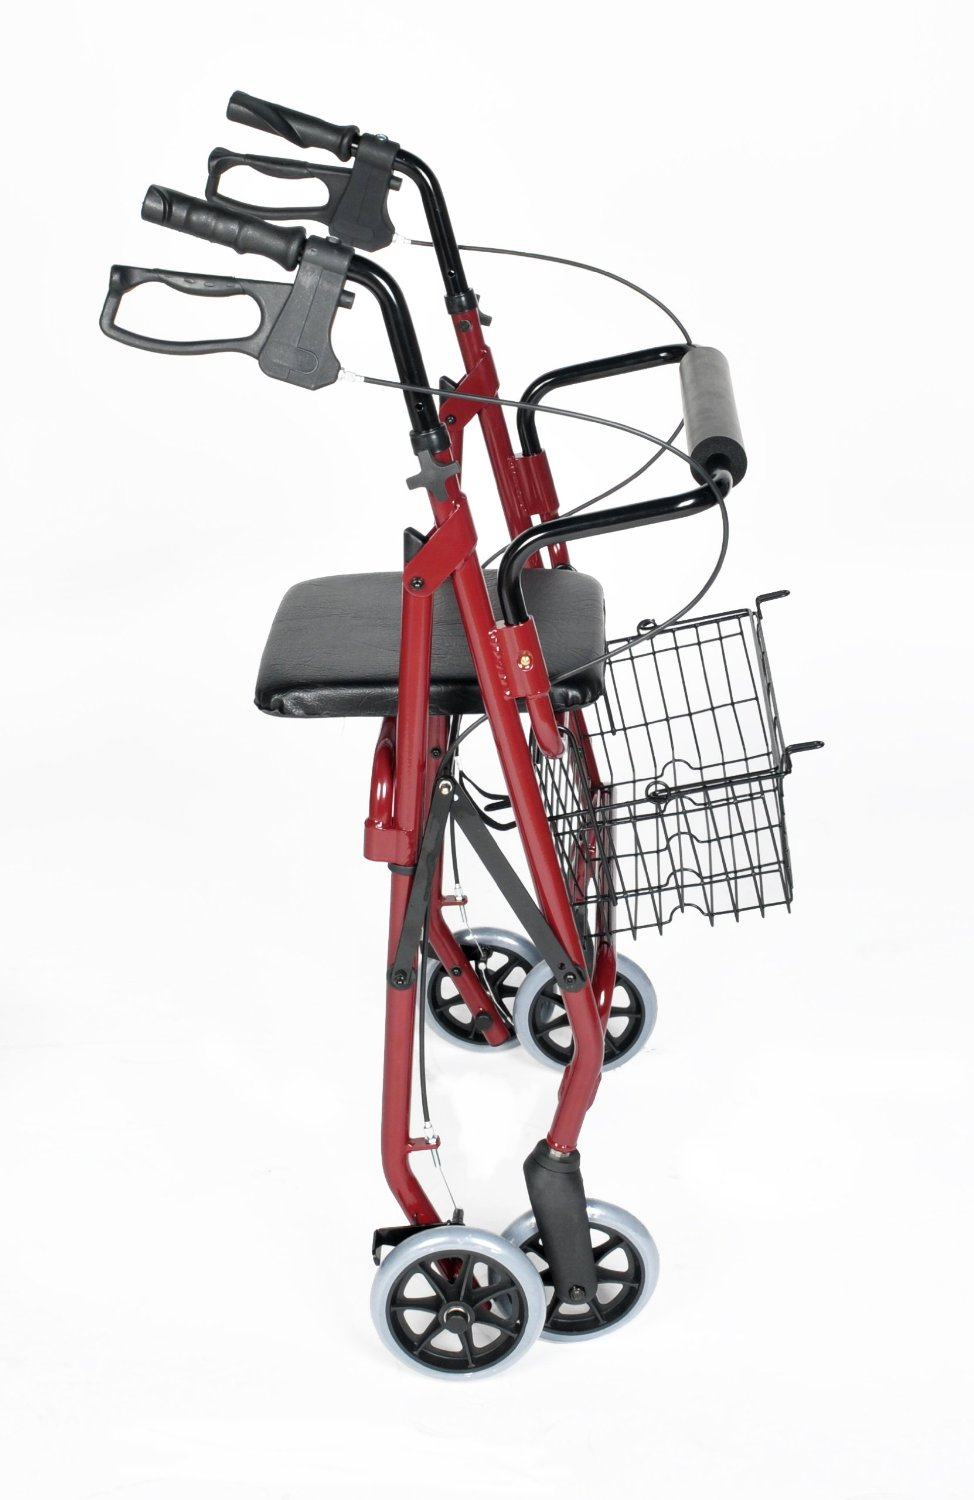 4 Wheel Walker With Cable Brakes Ability Assist